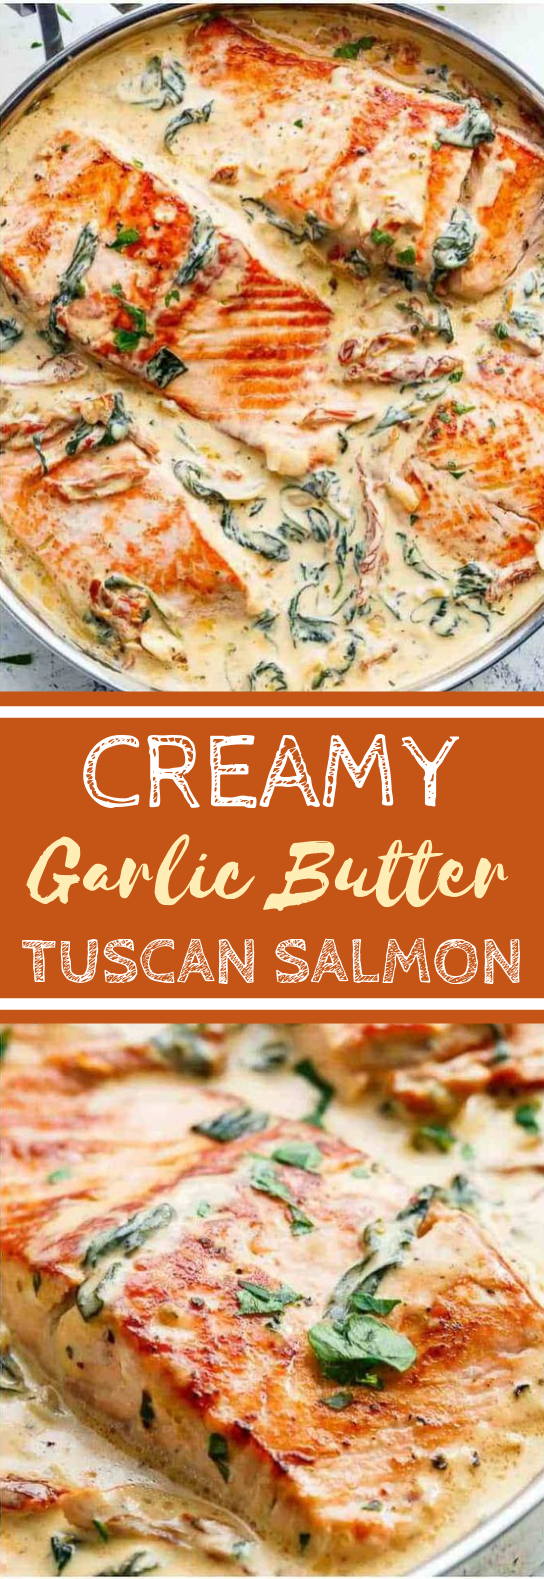 Creamy Garlic Butter Tuscan Salmon #fidh #dinner